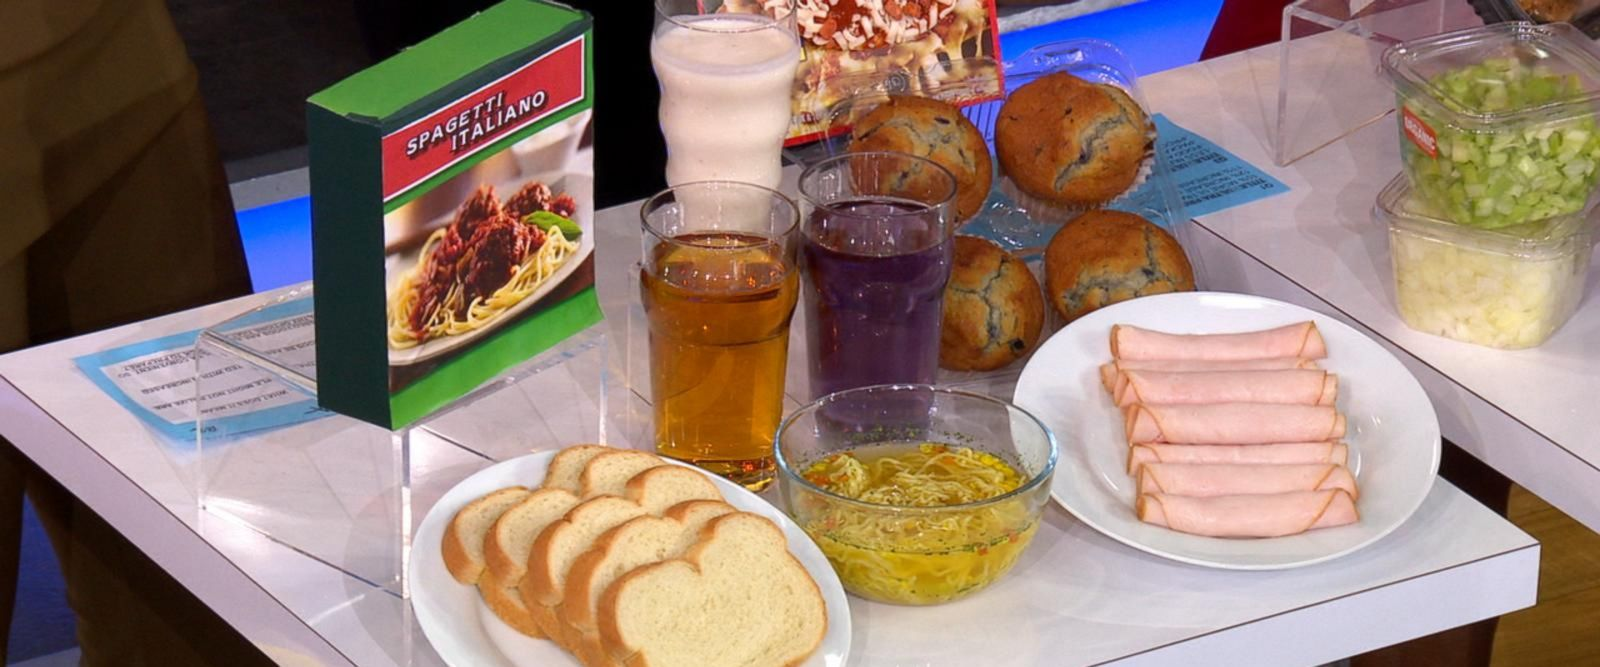 VIDEO: Eating more processed foods could increase your cancer risk, study says